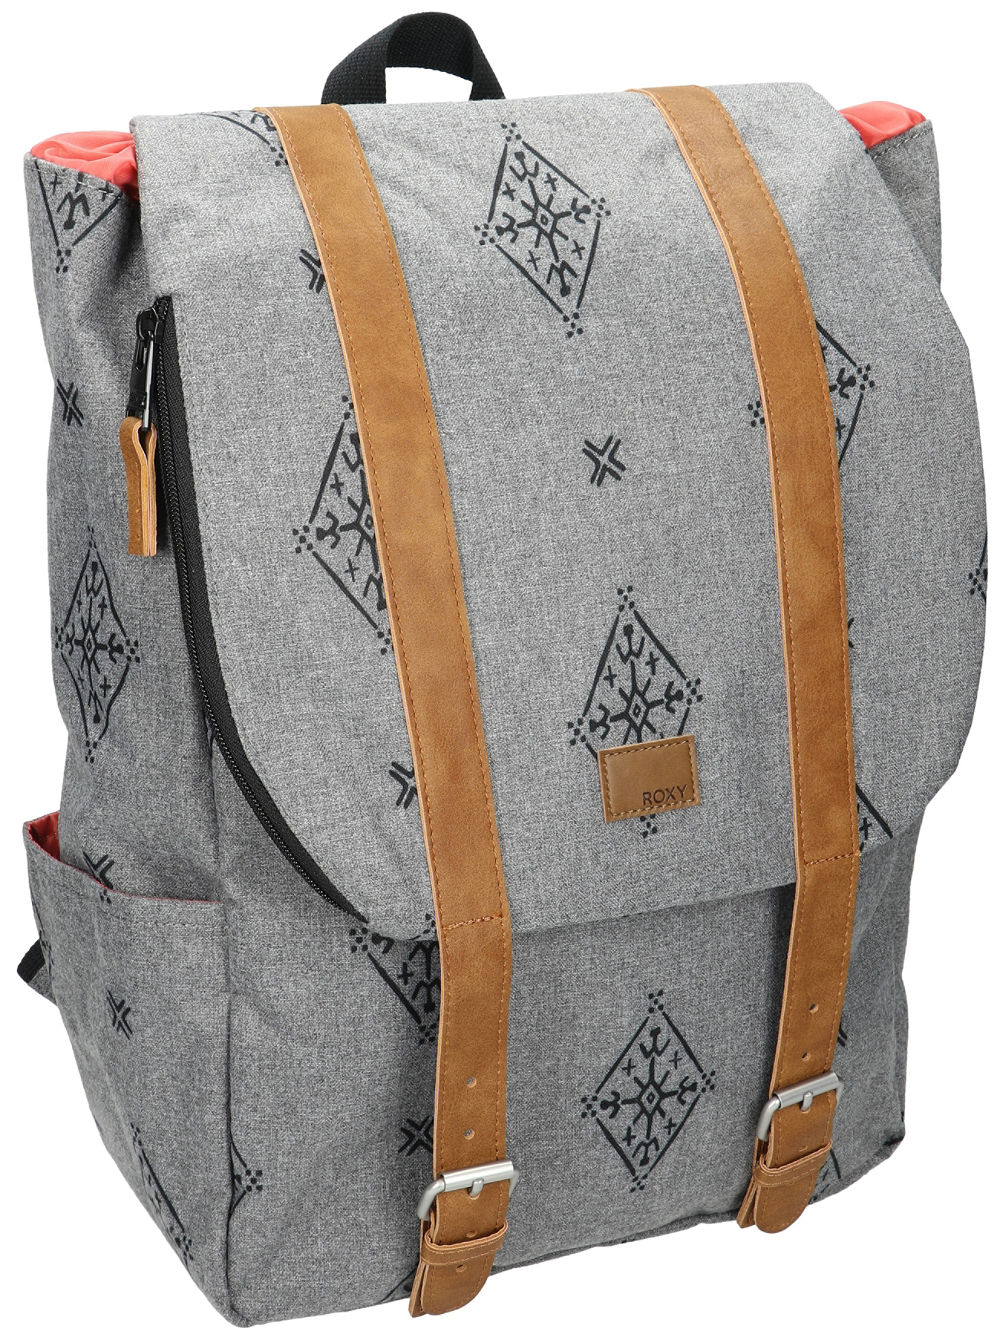 Another Dream Rucksack